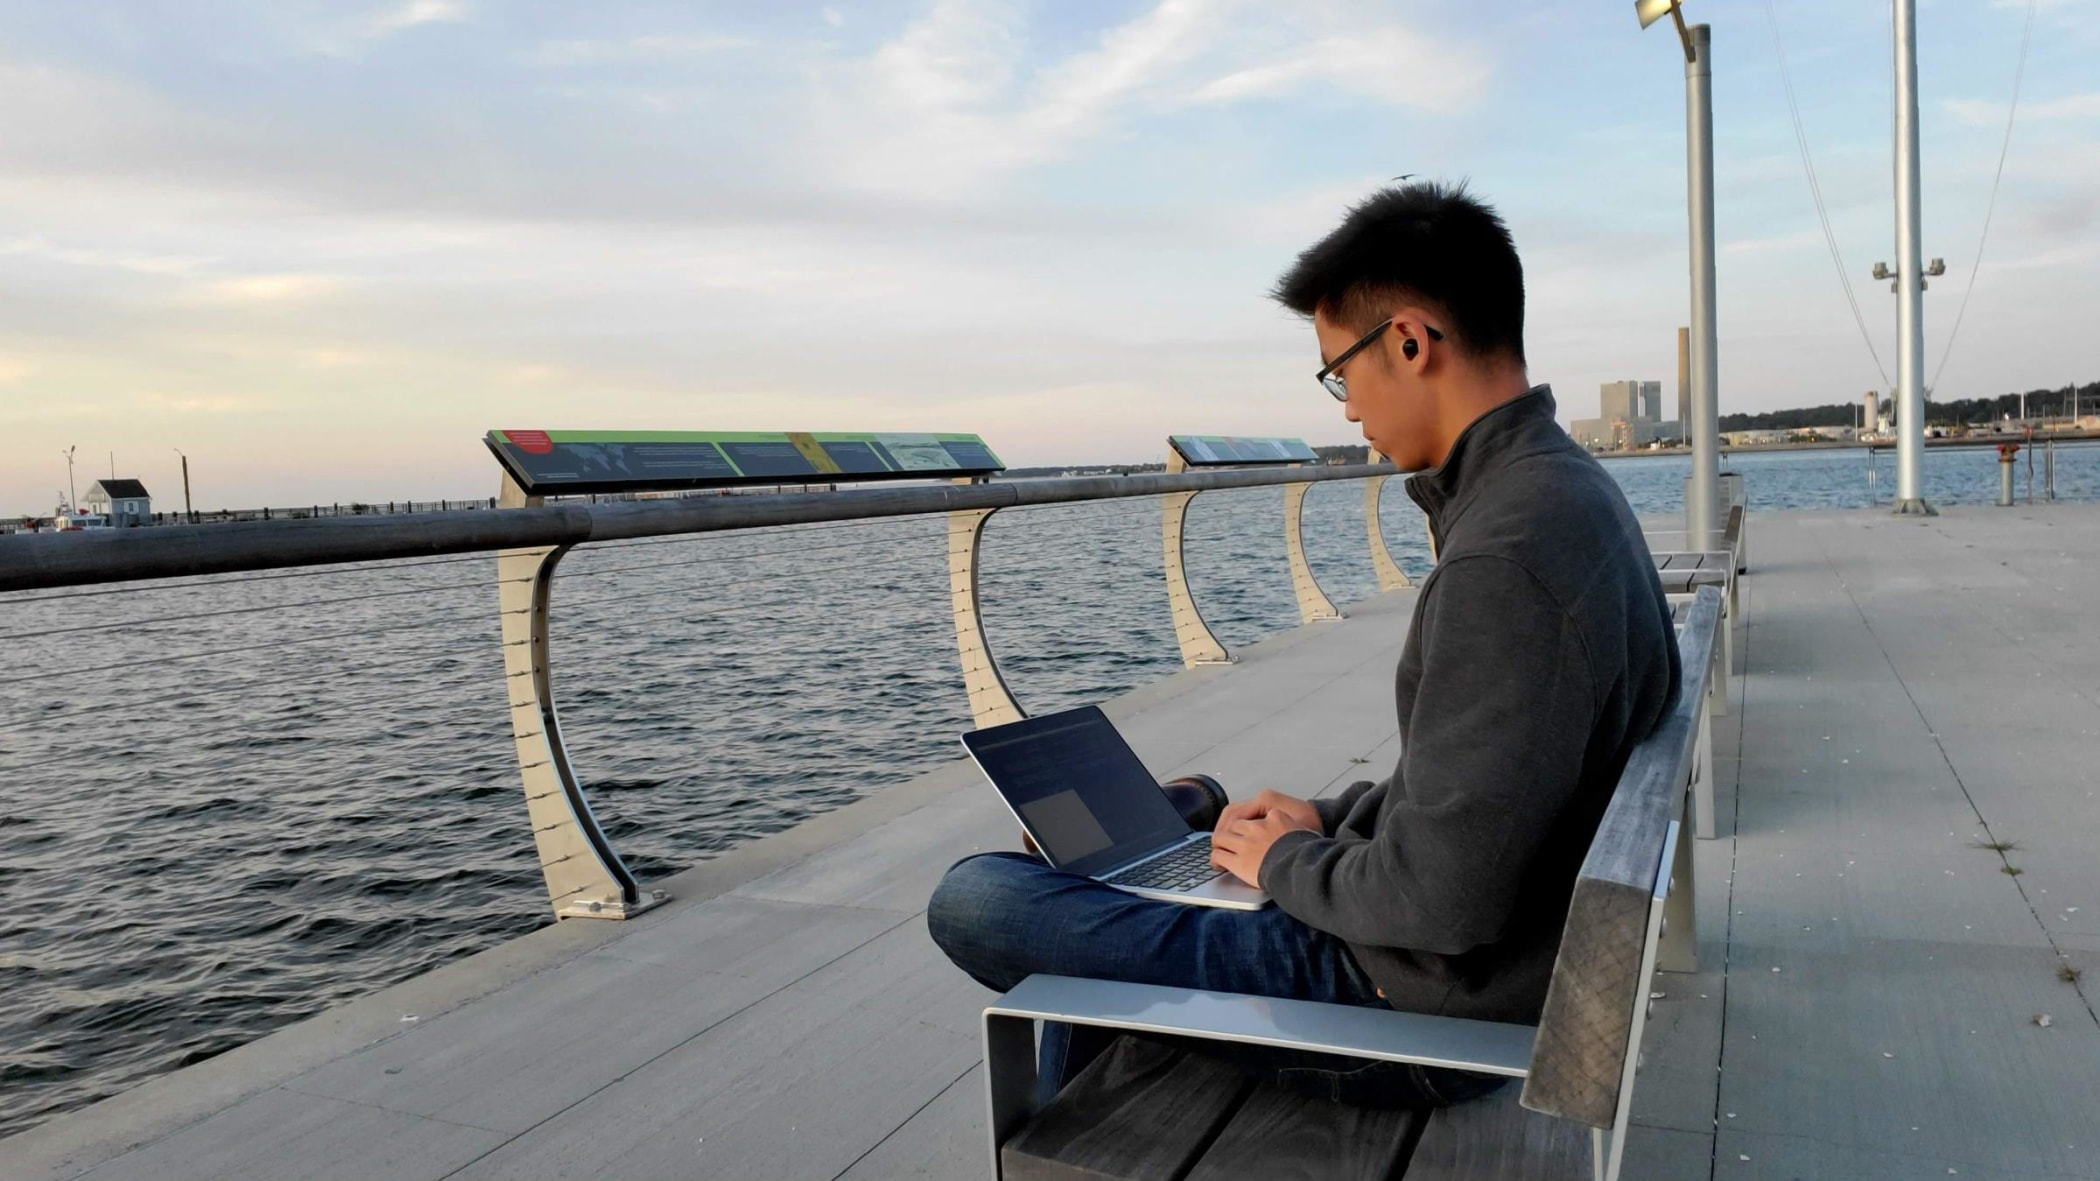 Kevin sitting on a bench with laptop by the water